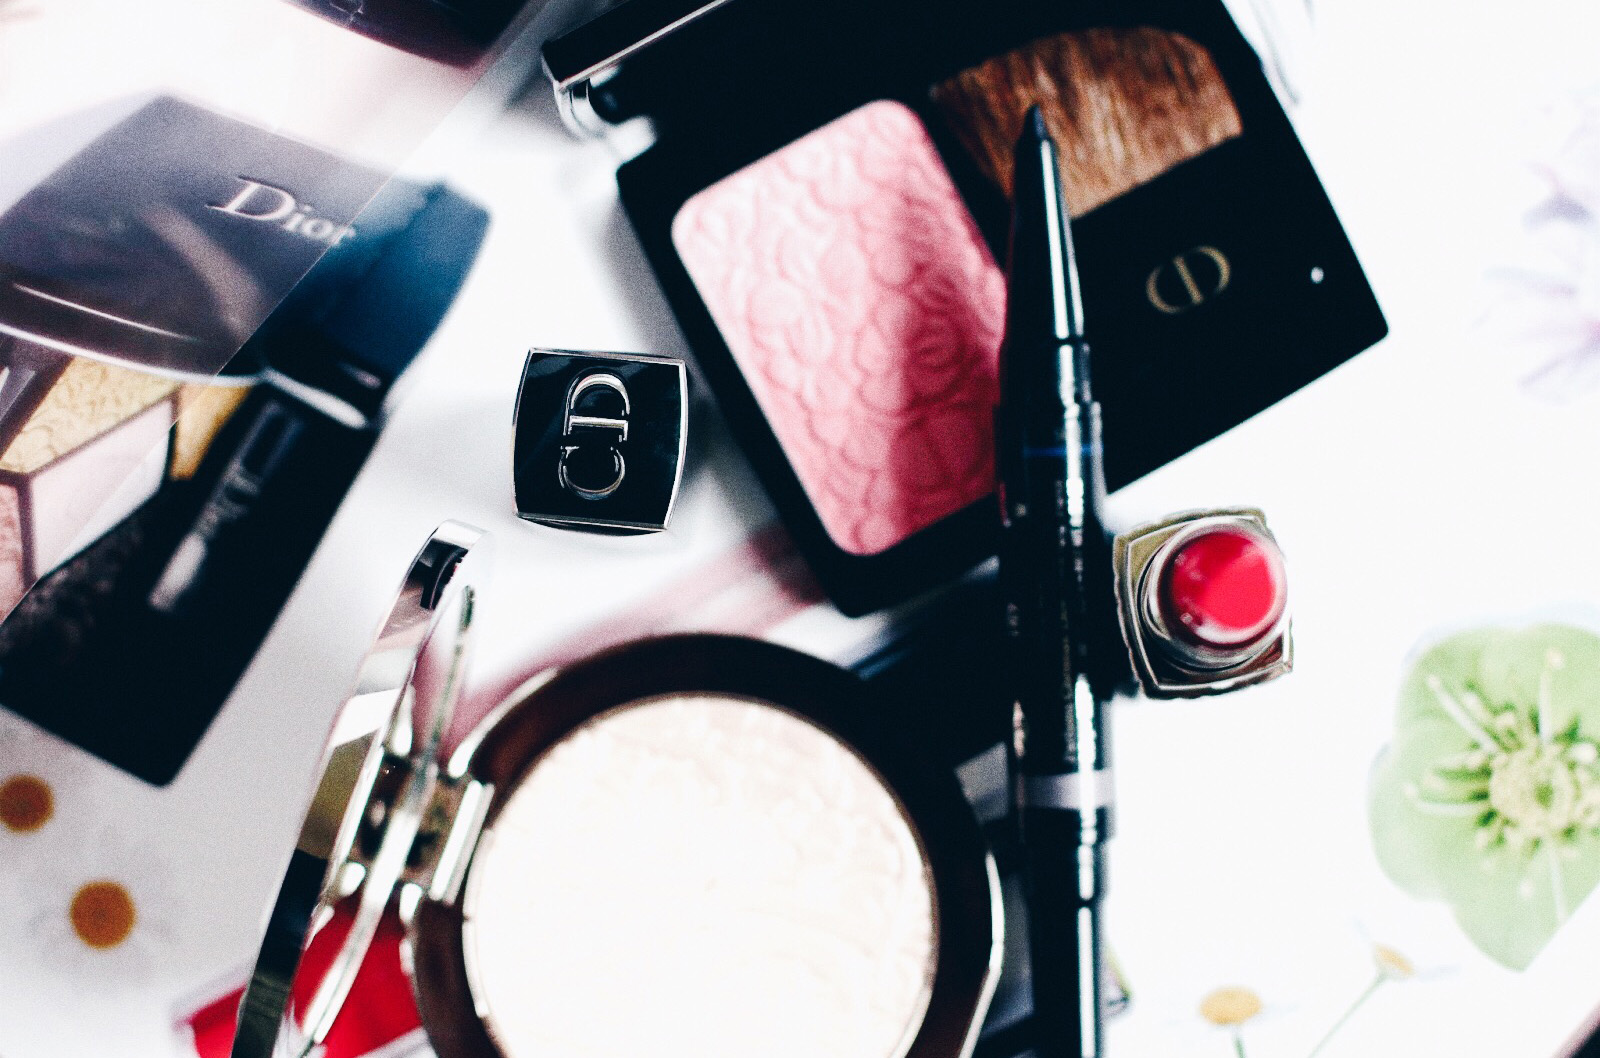 dior maquillage printemps 2016 blush crayon double embout highligteravis test swatches